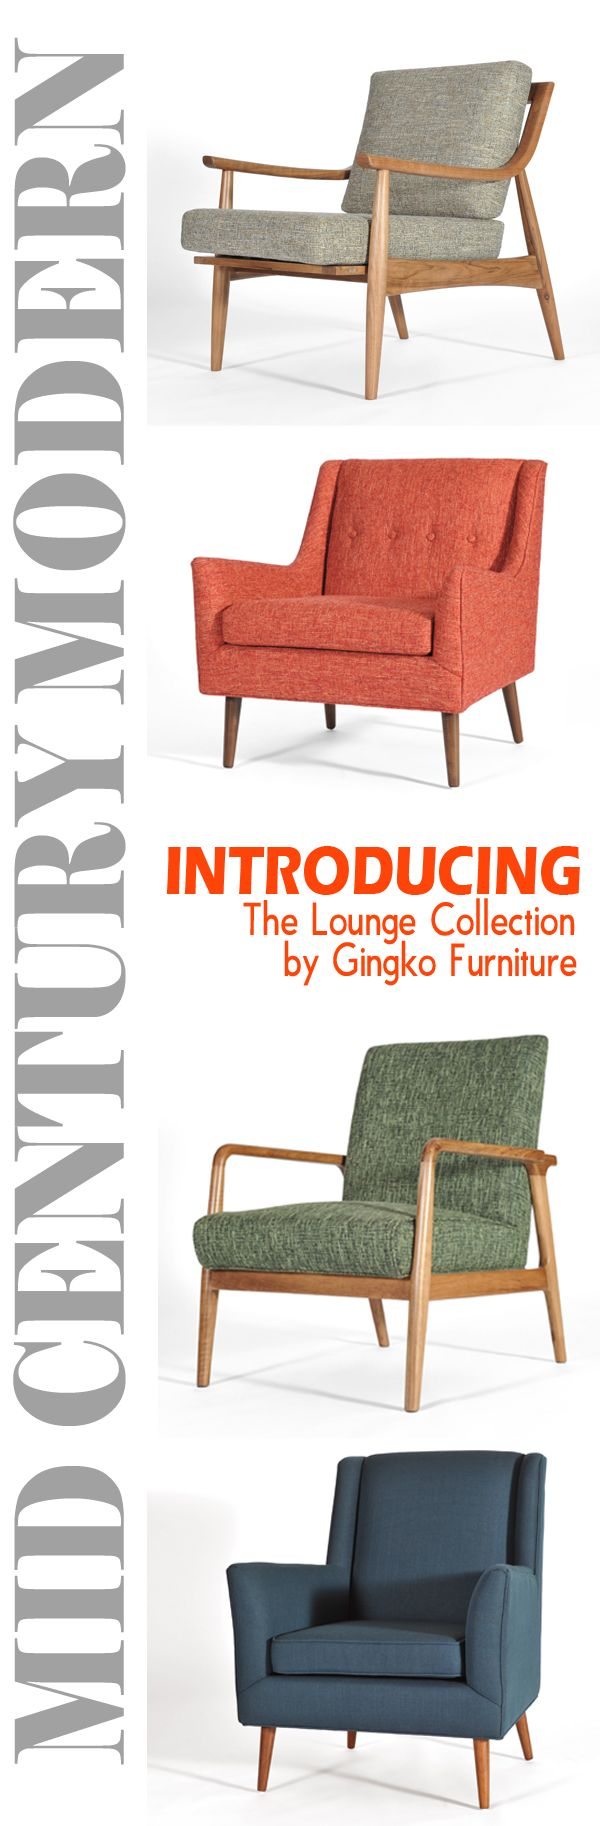 Great Gingkou0027s Mid Century Modern Lounge Chairs Are Available In 6 Rich Colorways  With Solid Walnut Frames. See The Collection At Www. Or VISIT Our SF And ... Design